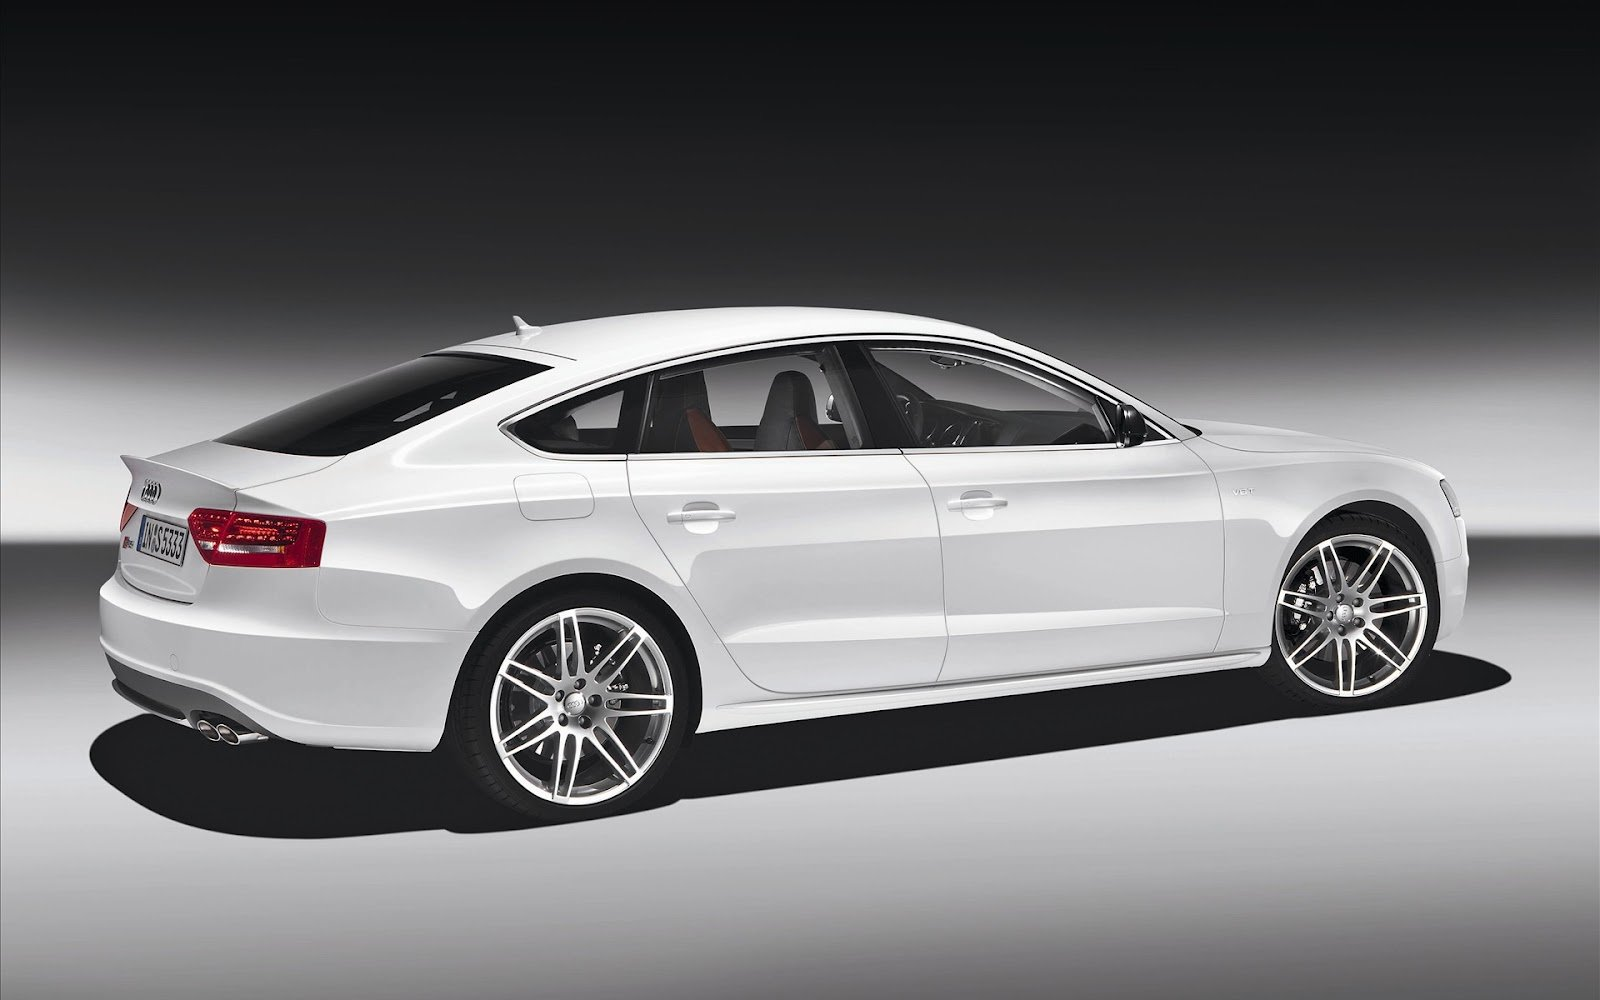 Latest New Car Photo White Audi S5 Wallpaper Free Download